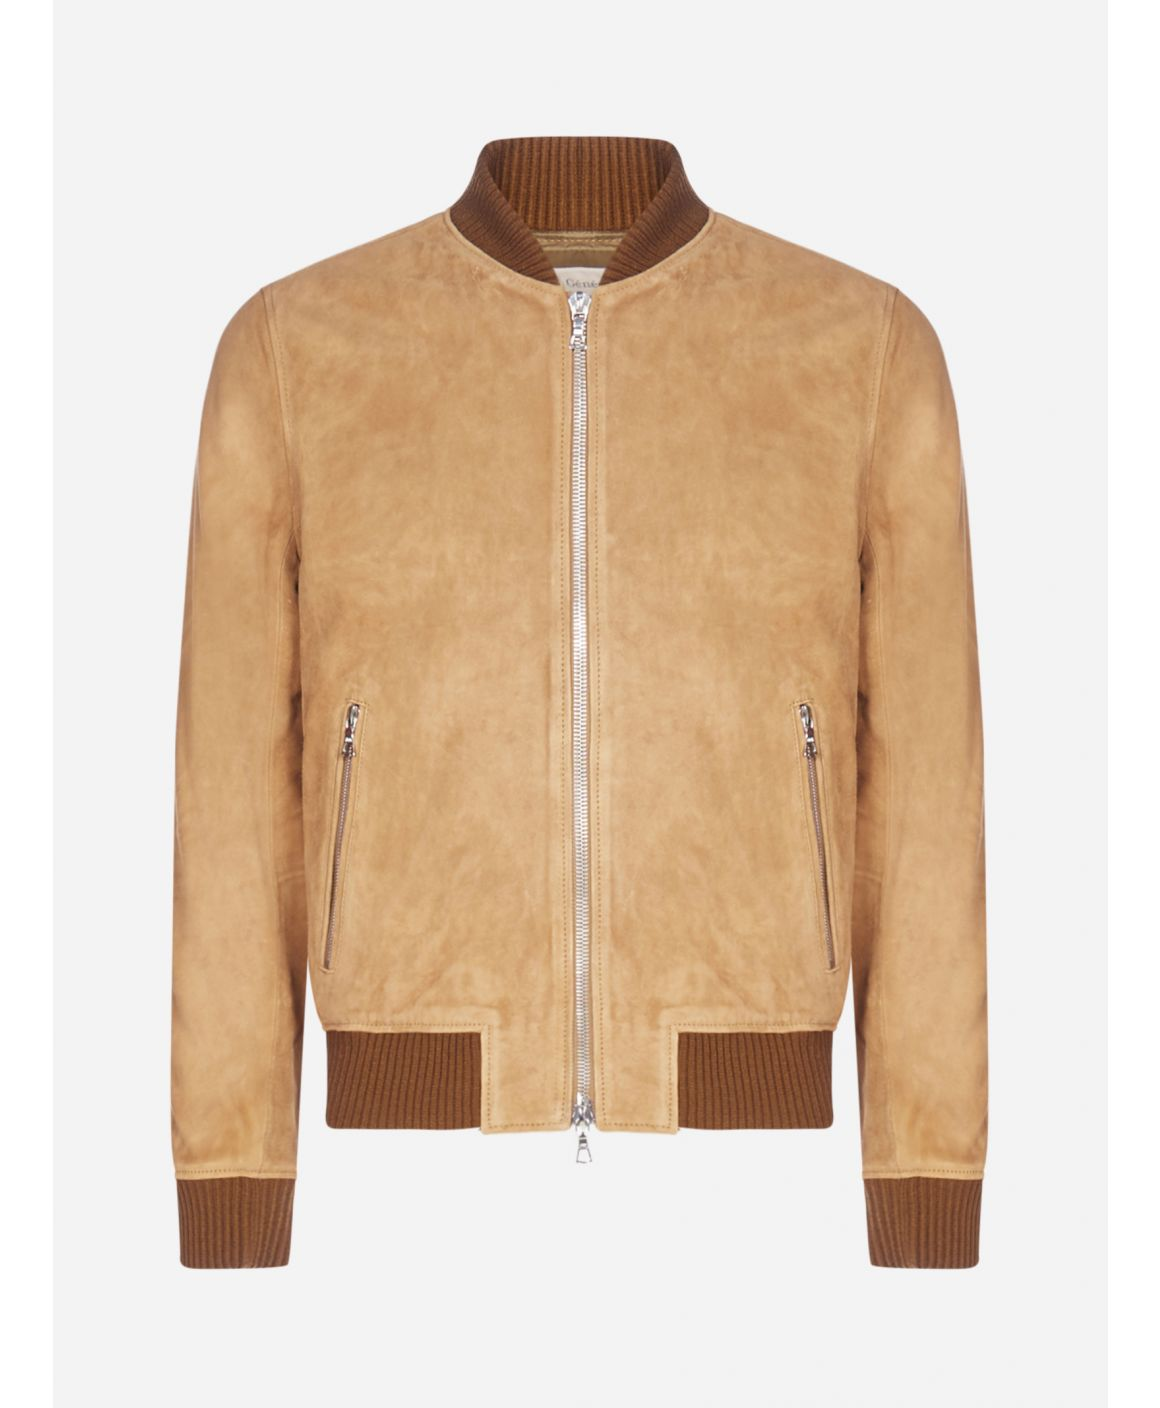 Todd suede bomber jacket